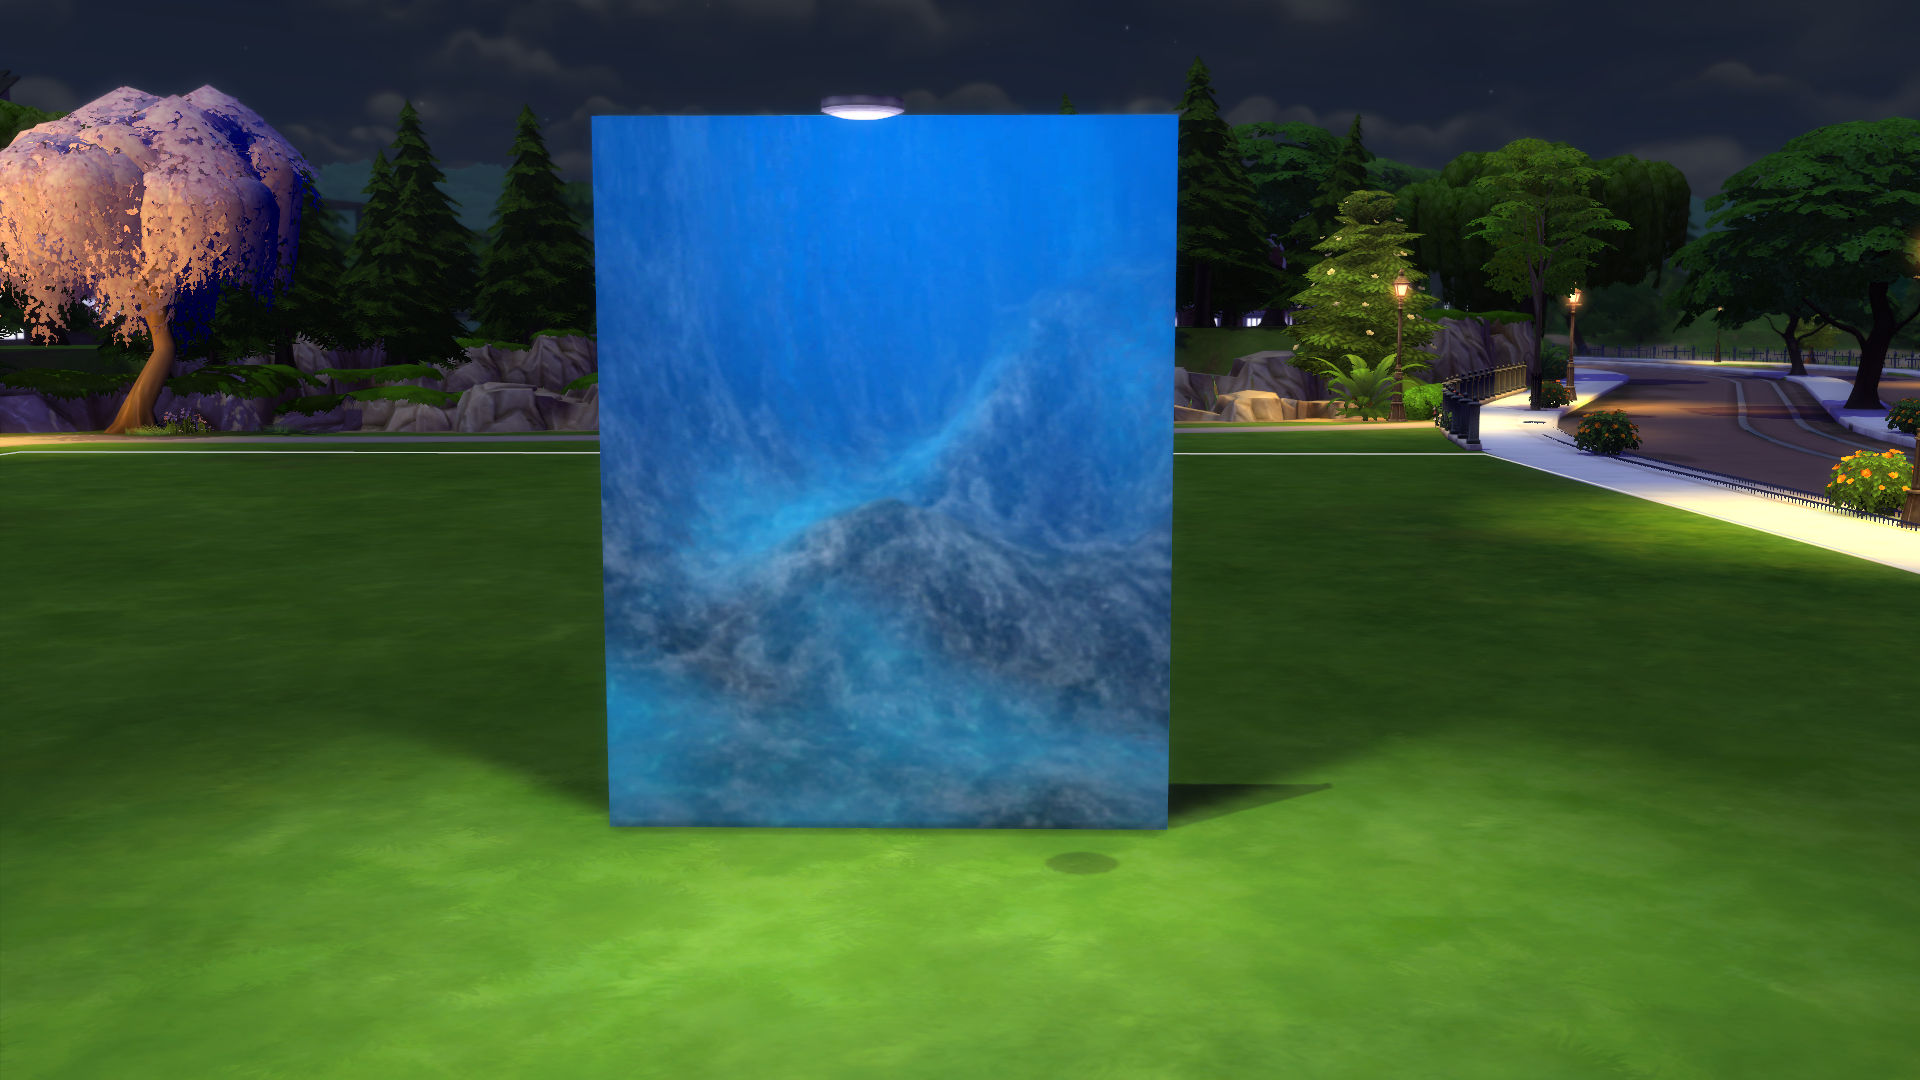 Fall Patterns Wallpaper Mod The Sims Under The Sea Part Ii Underwater Walls